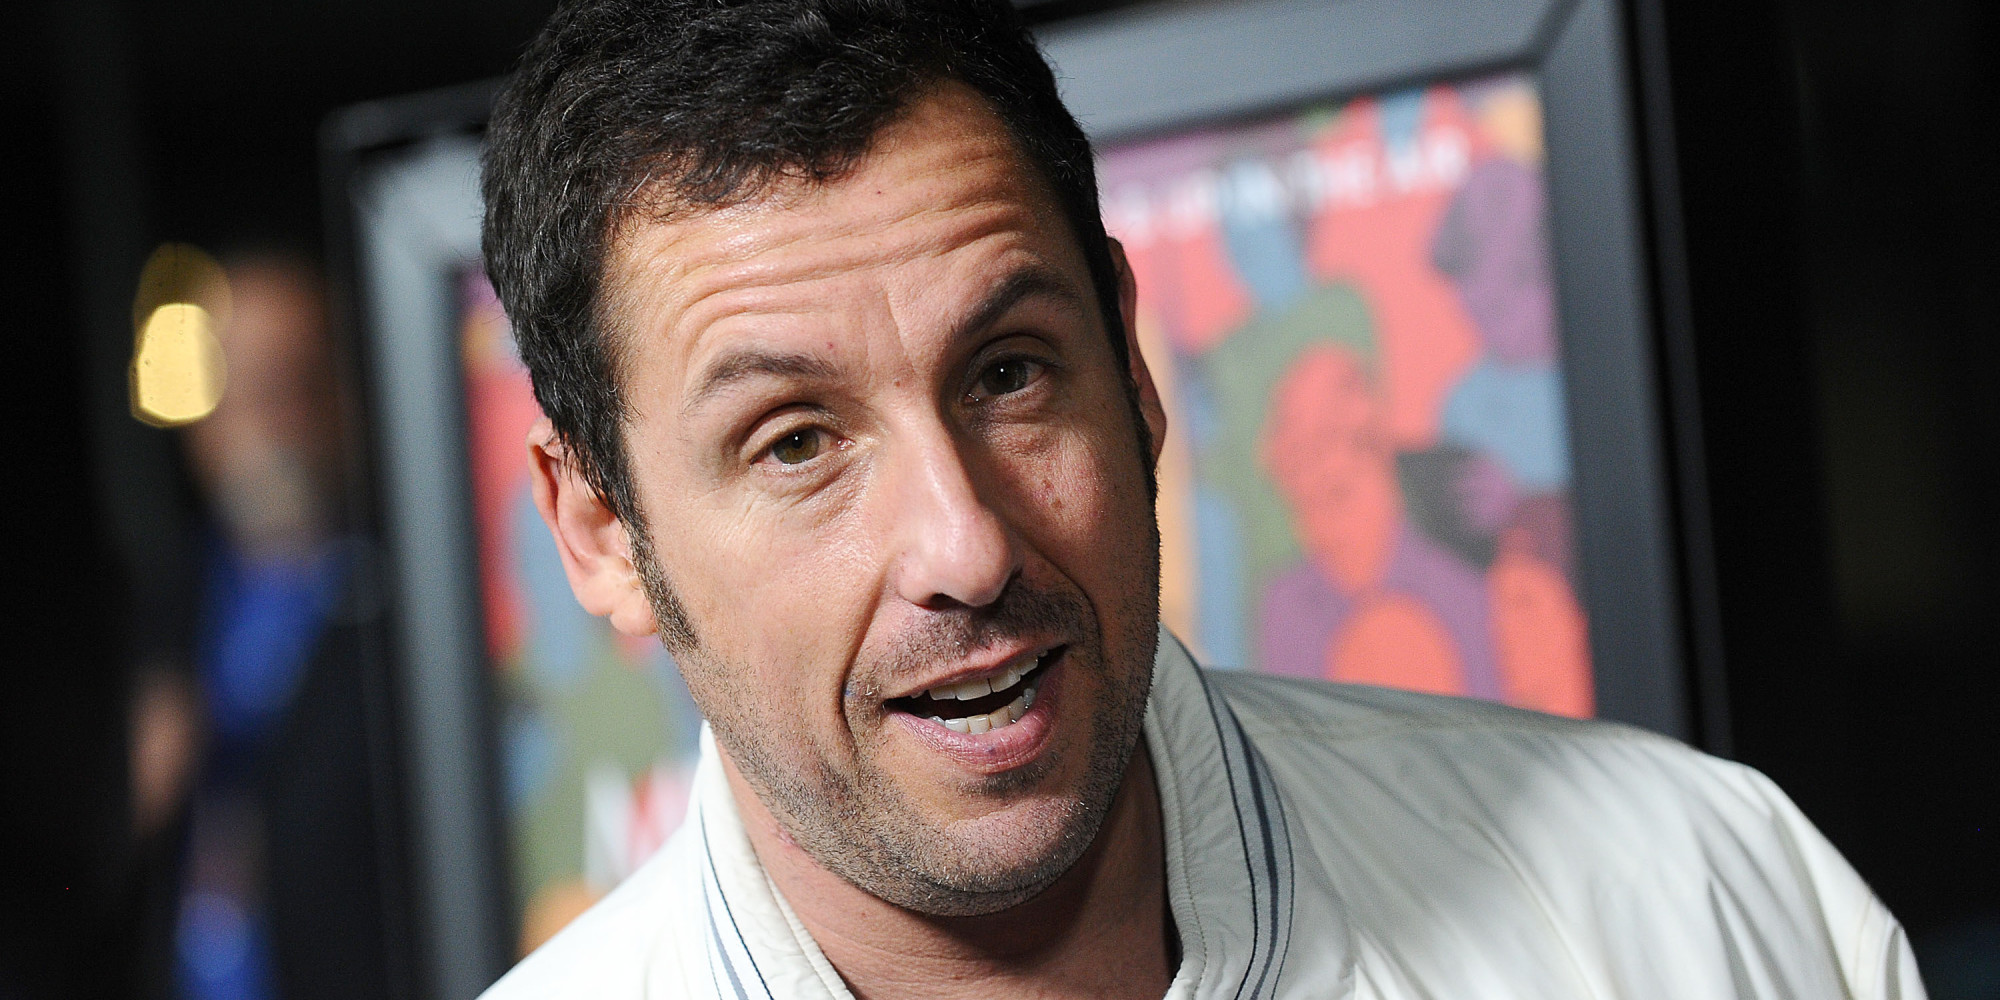 Adam Sandler To Make 4 New Movies For Netflix | The Huffington Post